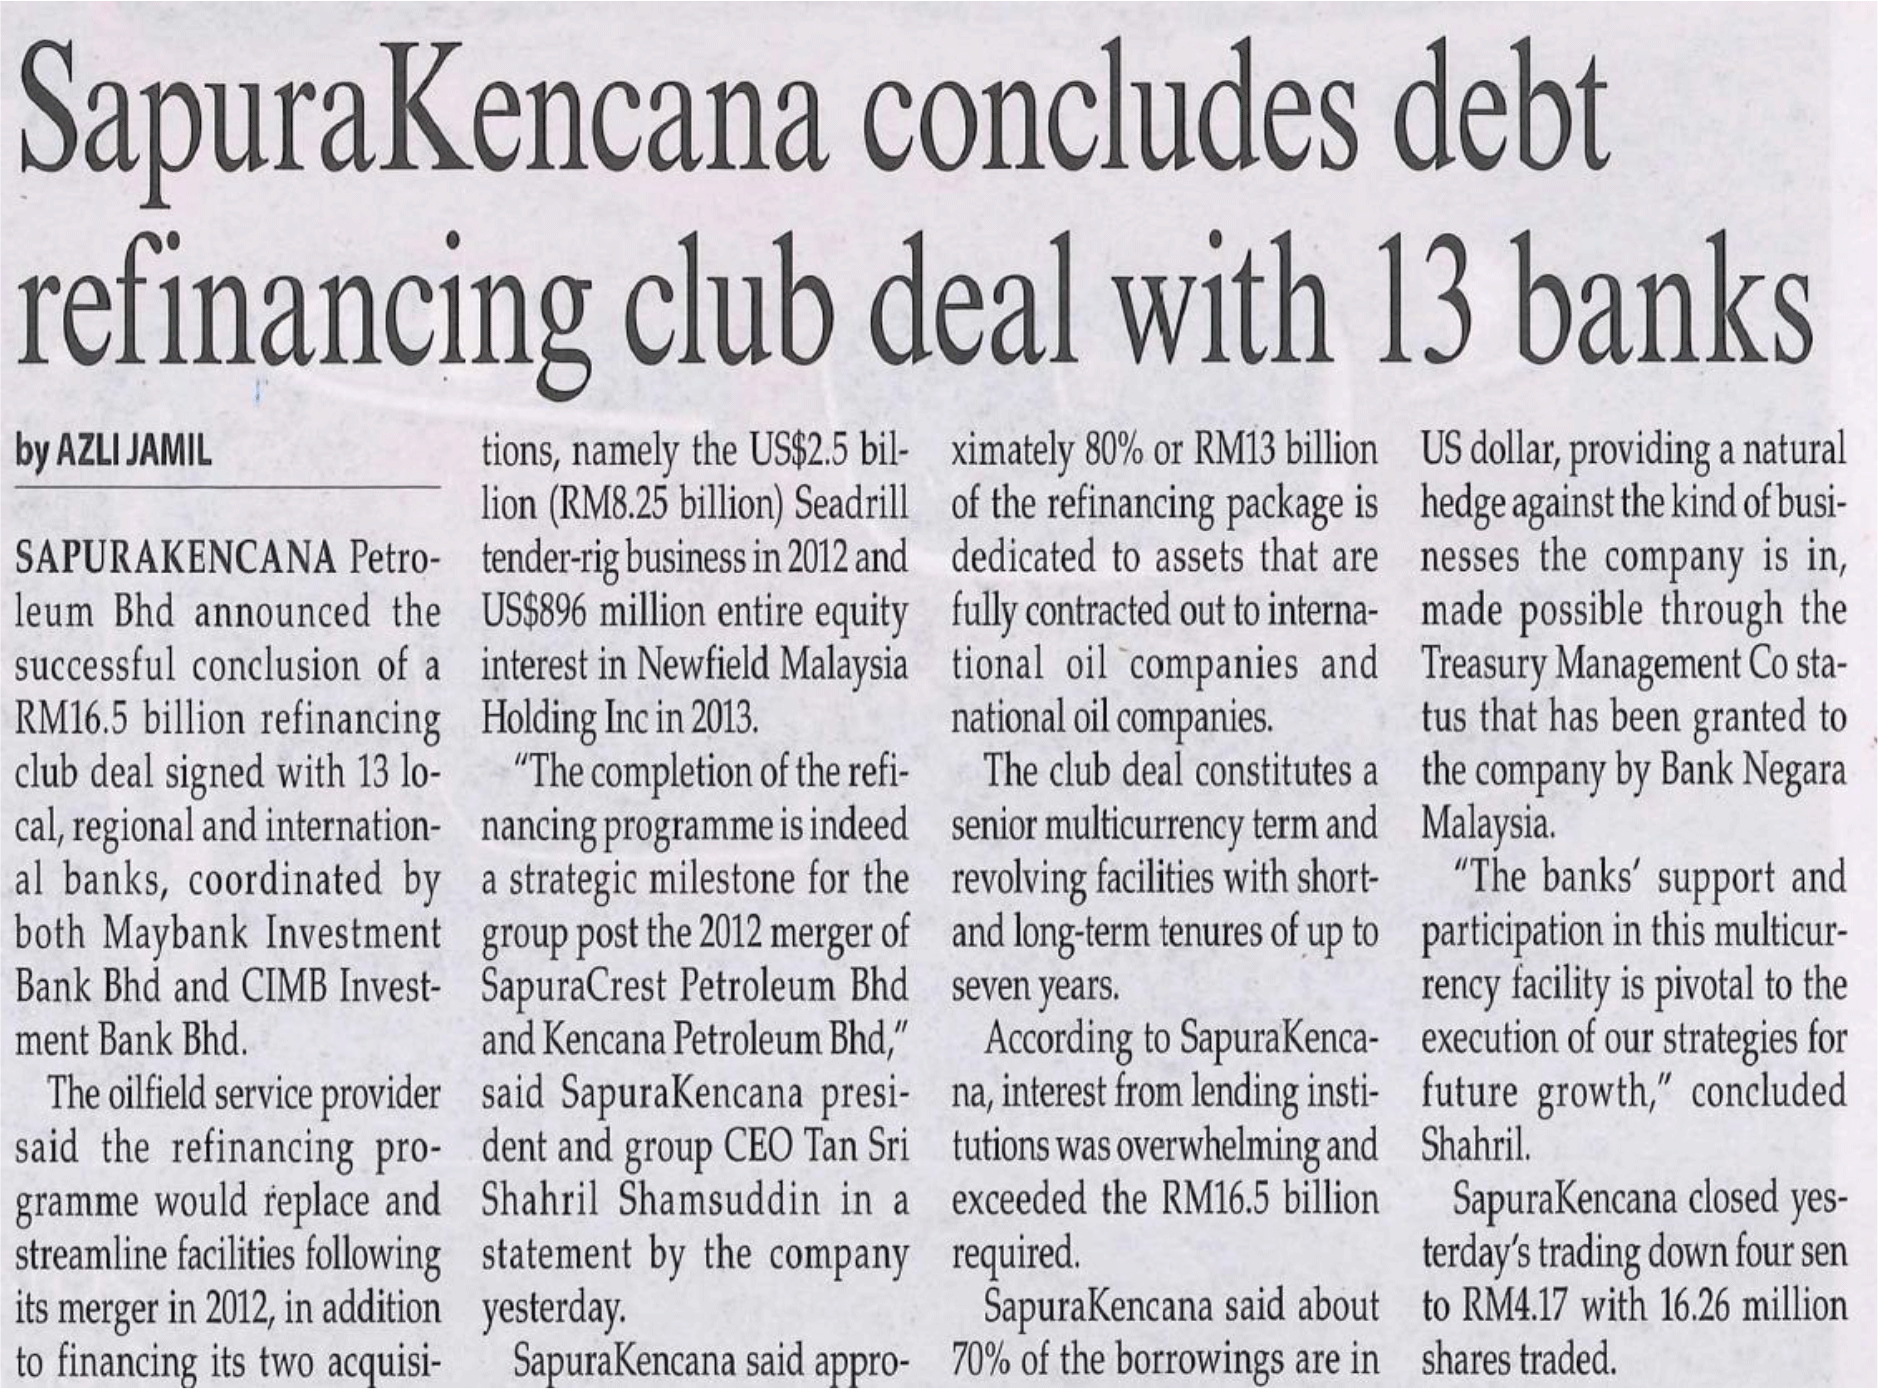 The-Malaysian-Reserve---SapuraKencana-concludes-debt-refinancing-club-deal-with-13-banks-(210314)